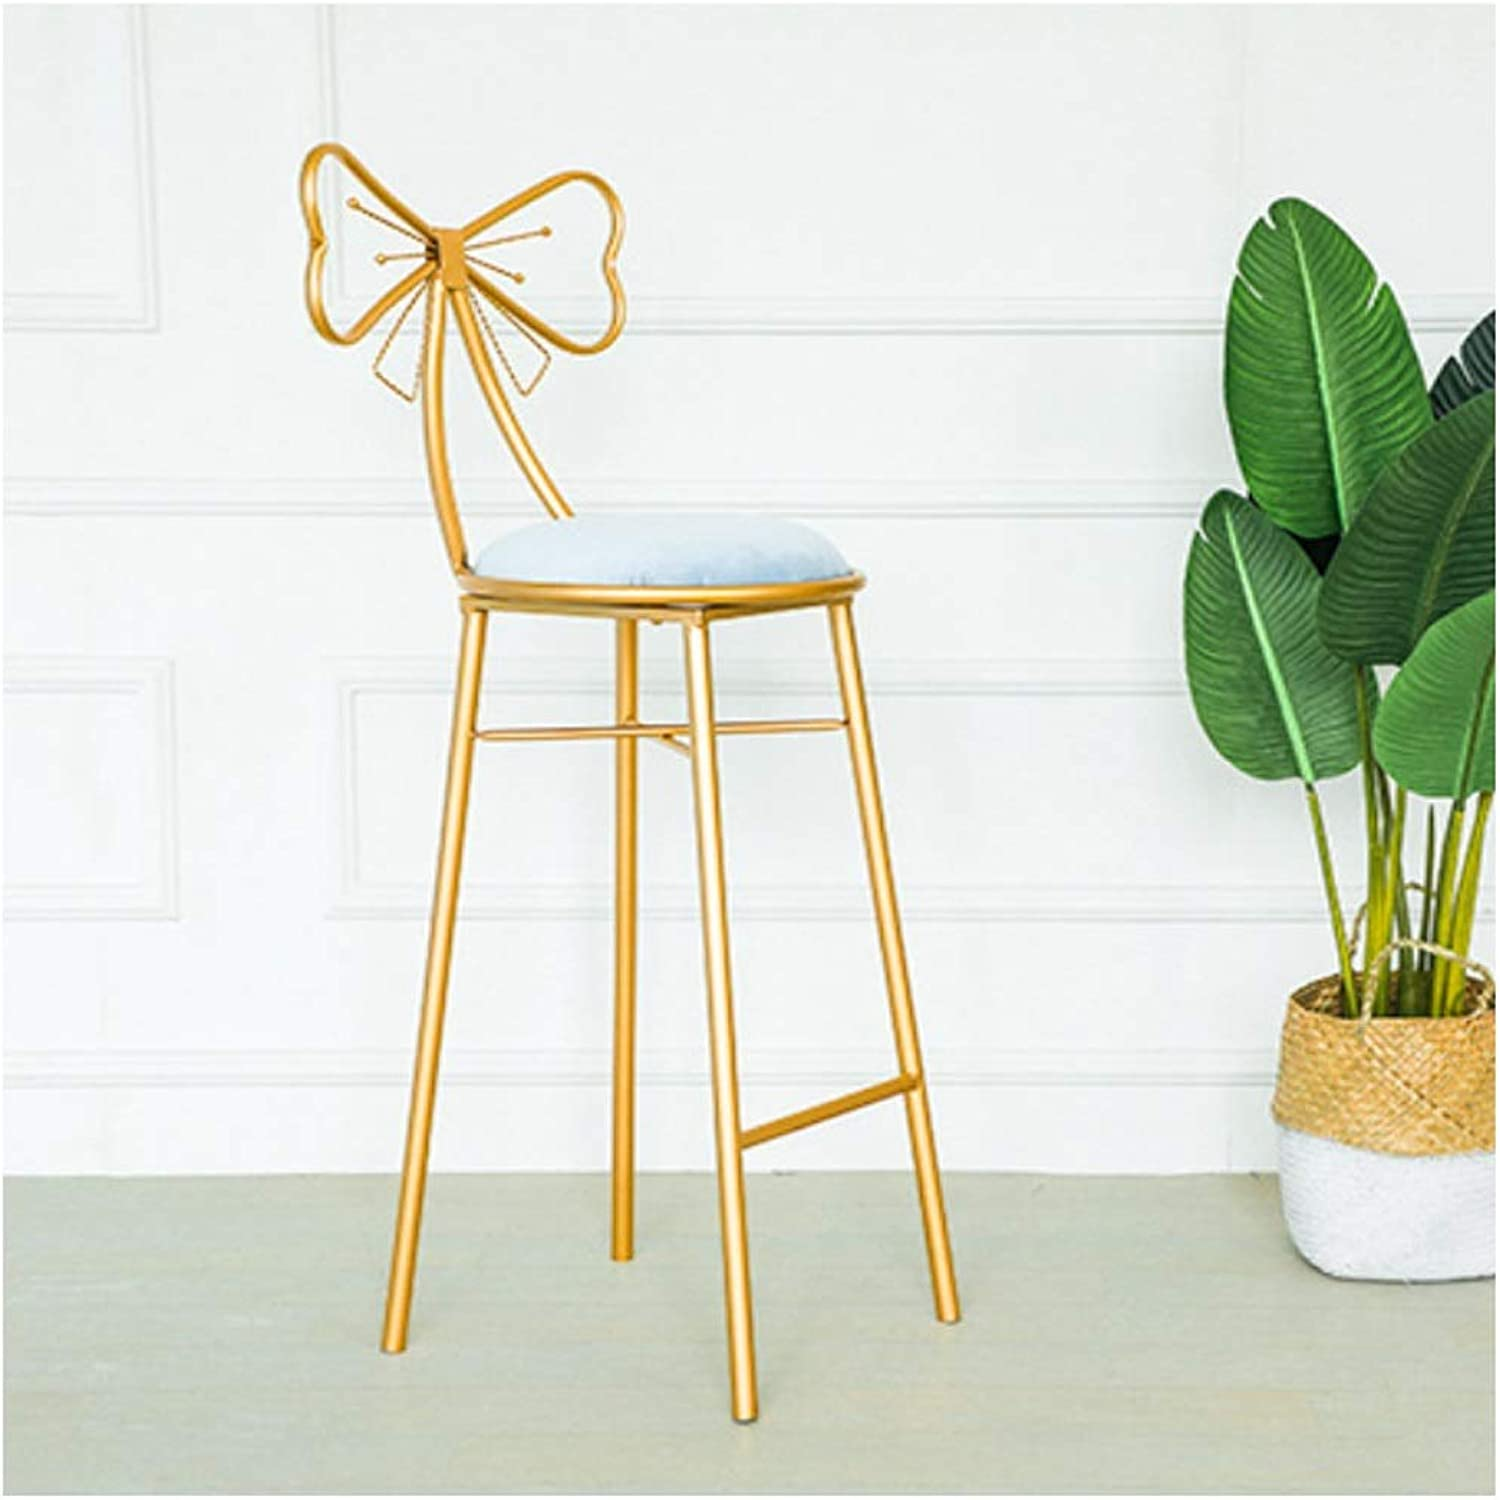 Simple Bar Stool European gold Wrought Iron Bar Stool Simple Family Tea Shop Bar Stool Creative High Stool Bow Backrest Cafe Restaurant for Kitchen Or Bar (color   bluee Suede, Size   65CM)